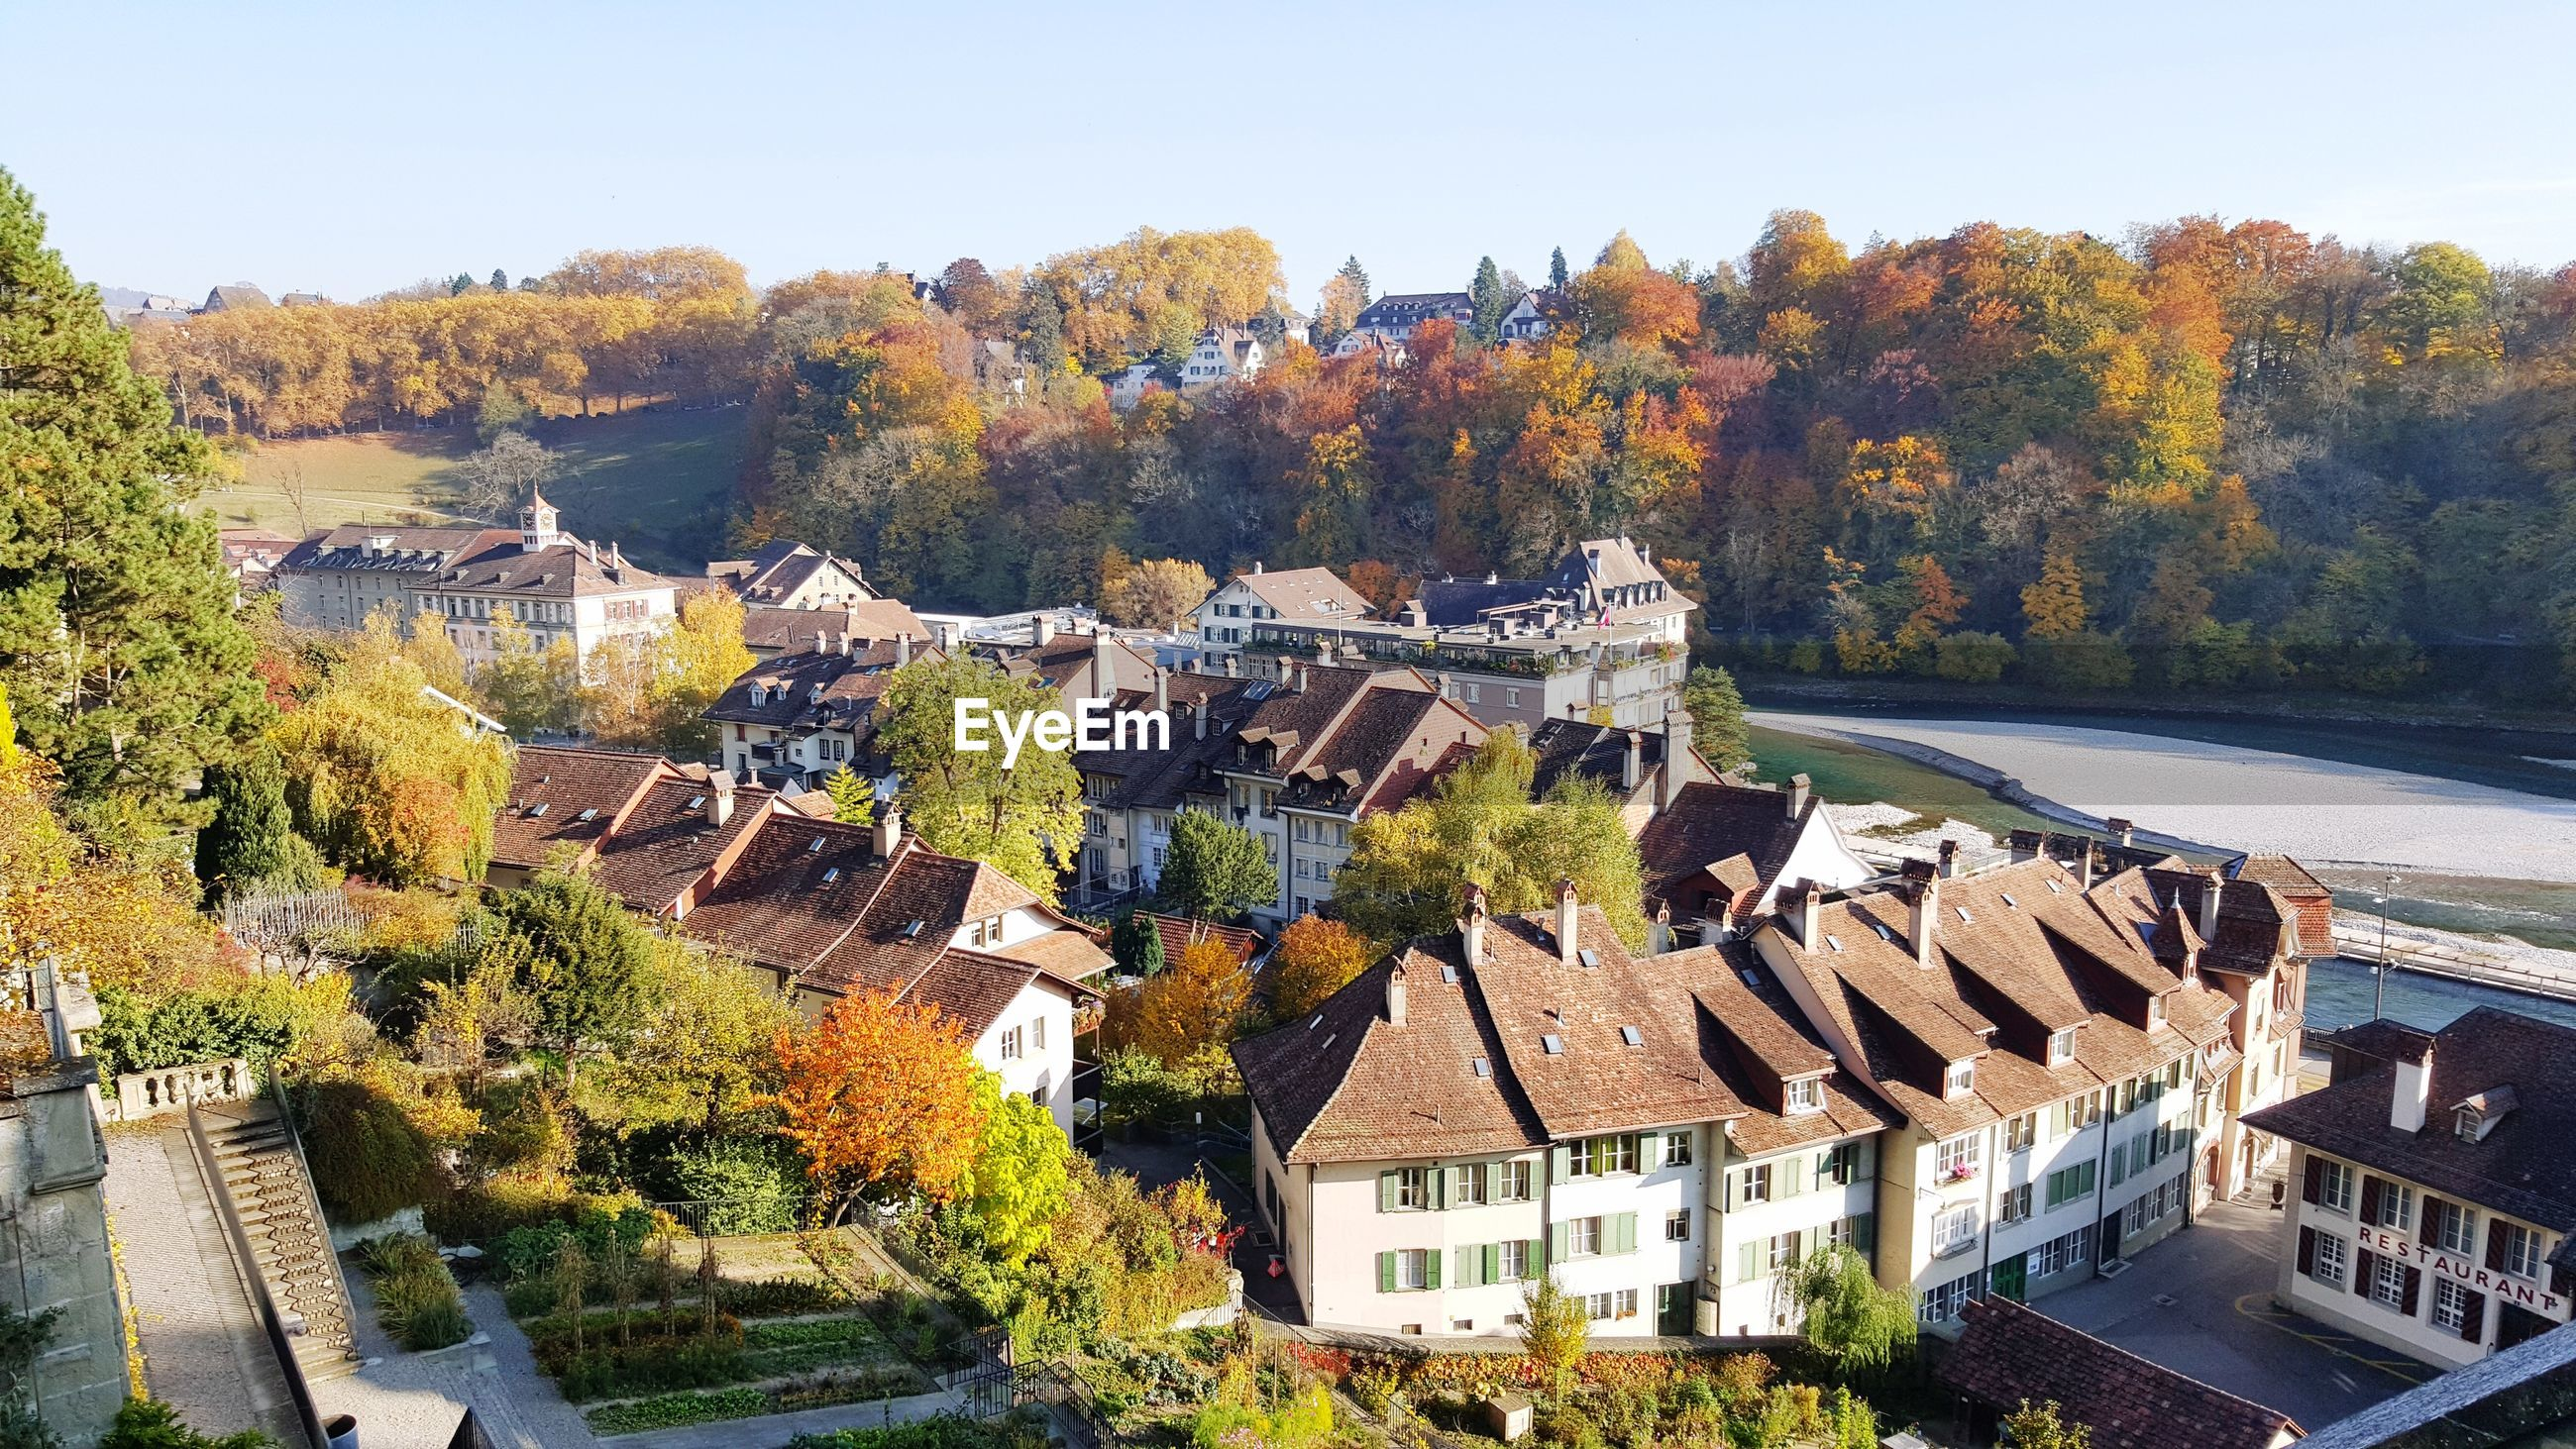 HIGH ANGLE VIEW OF TOWNSCAPE BY AUTUMN TREES